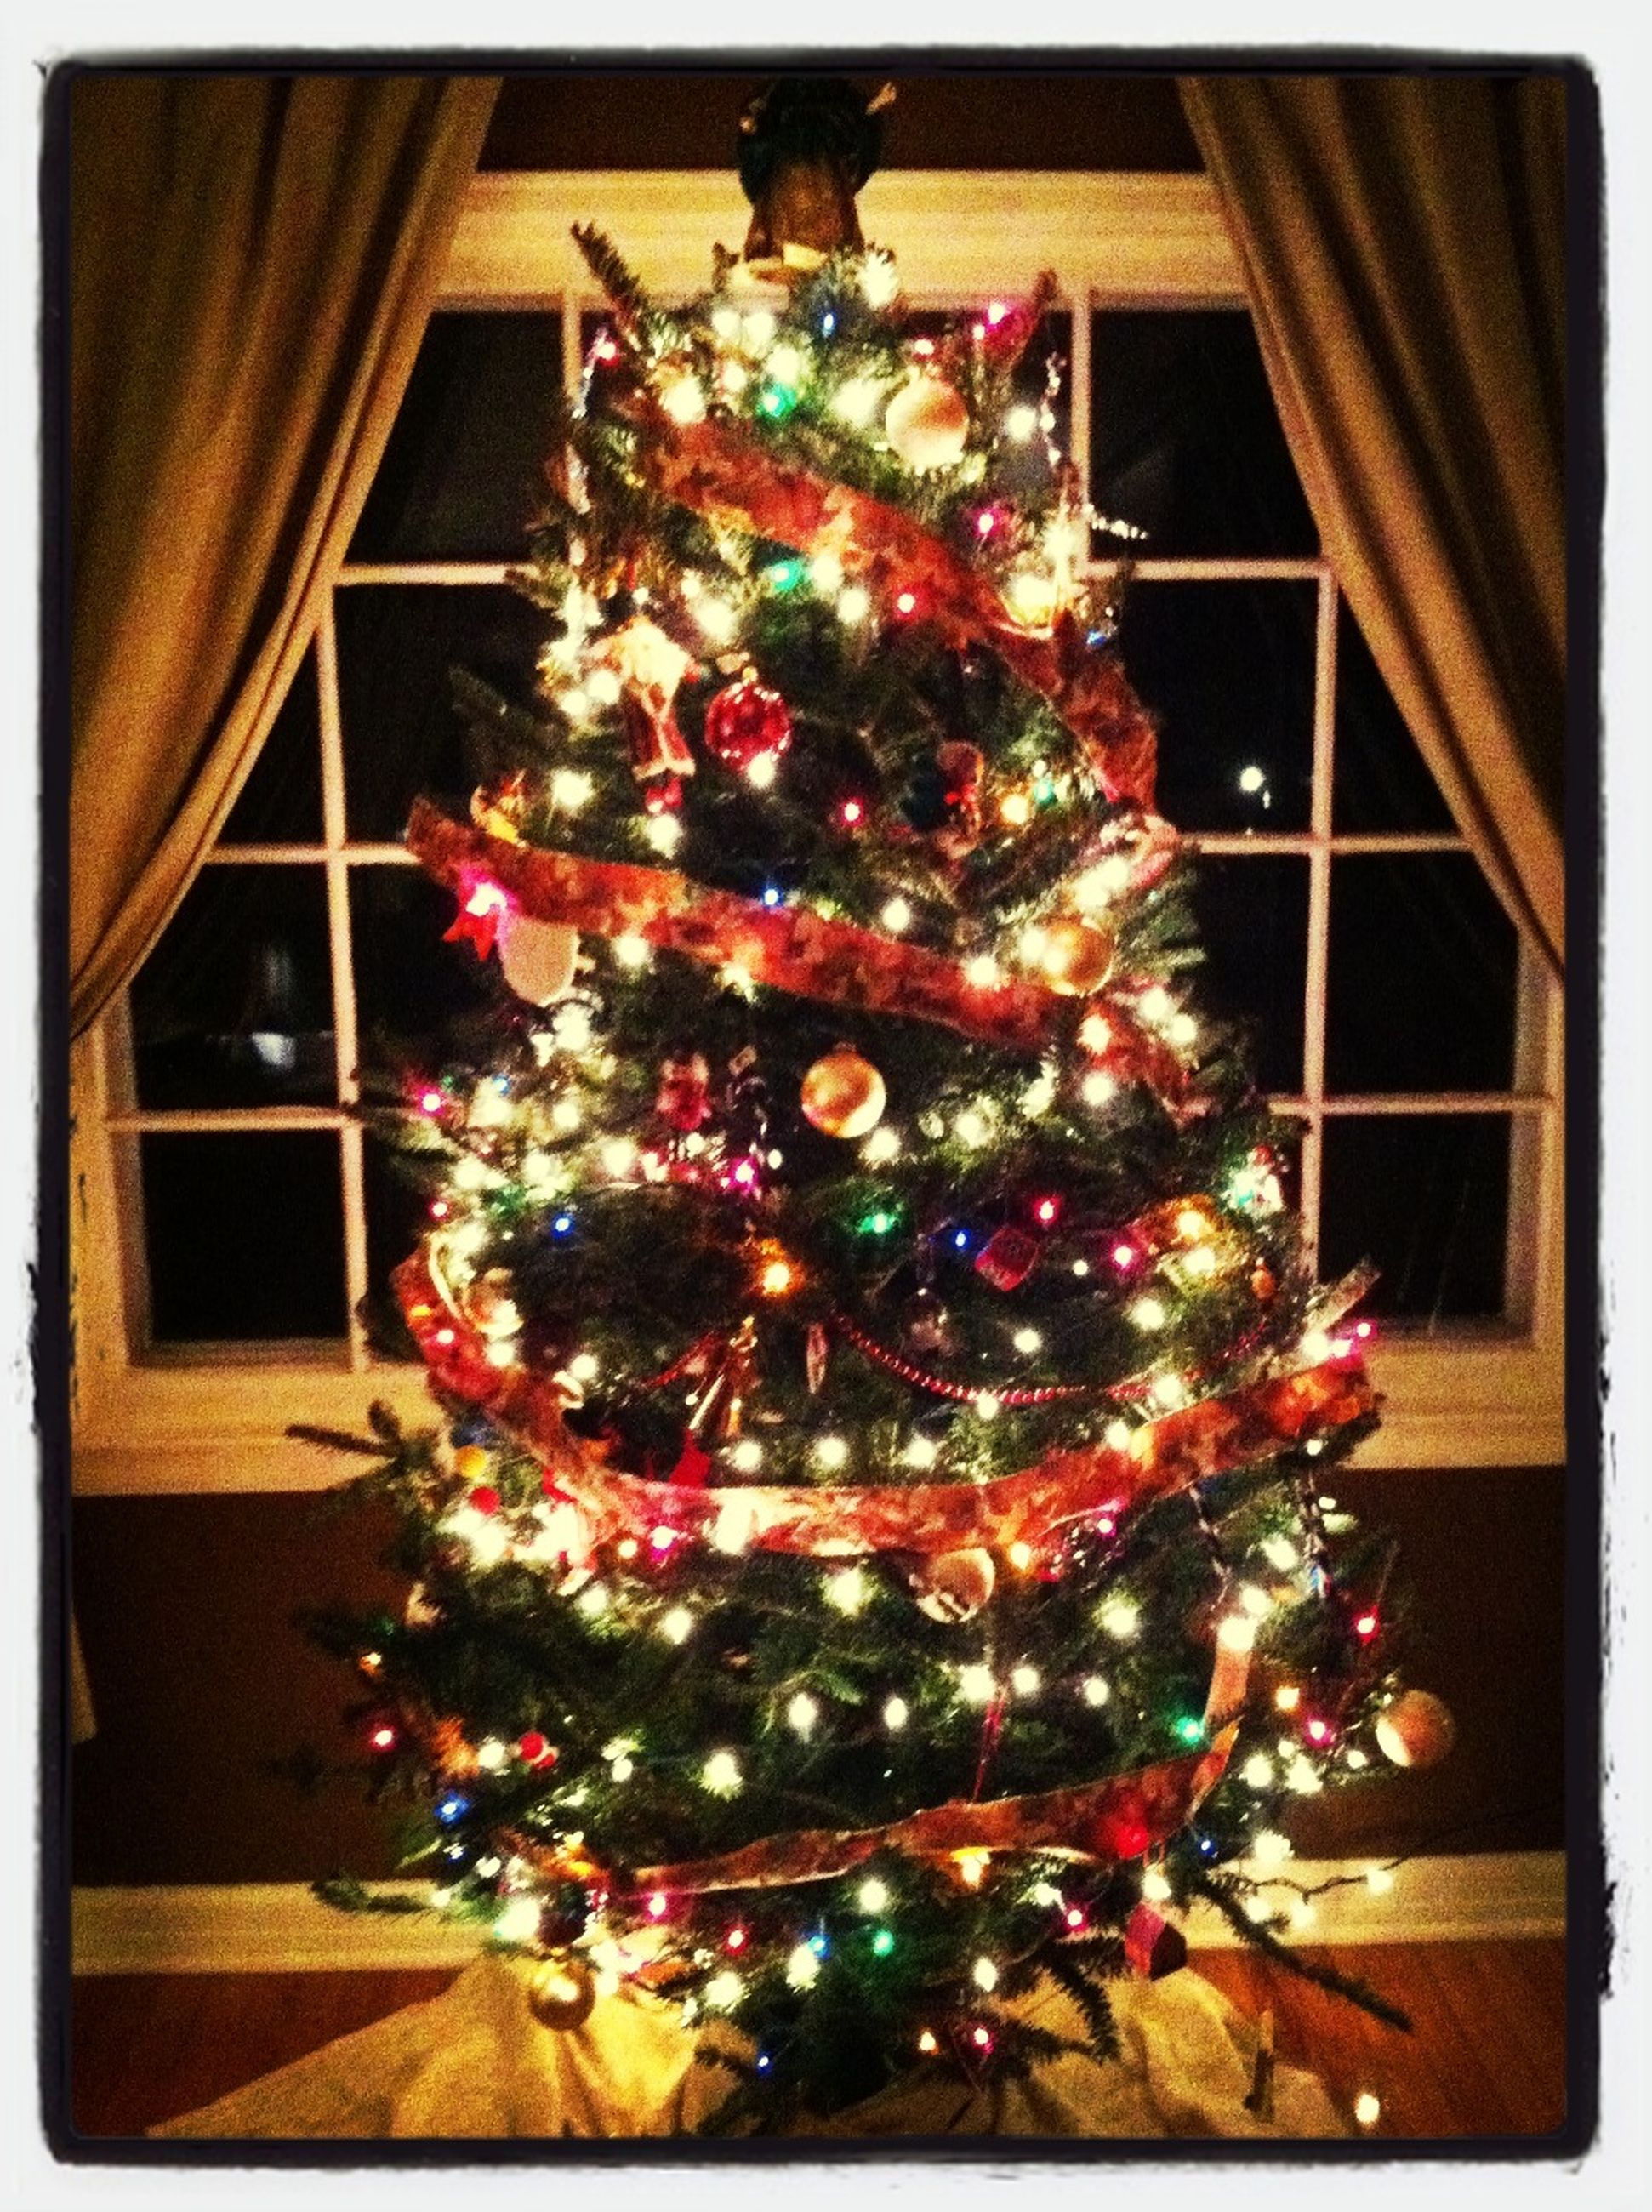 decoration, celebration, christmas, christmas decoration, christmas tree, indoors, tradition, hanging, illuminated, christmas lights, decor, flower, christmas ornament, transfer print, architecture, built structure, holiday - event, cultures, auto post production filter, low angle view